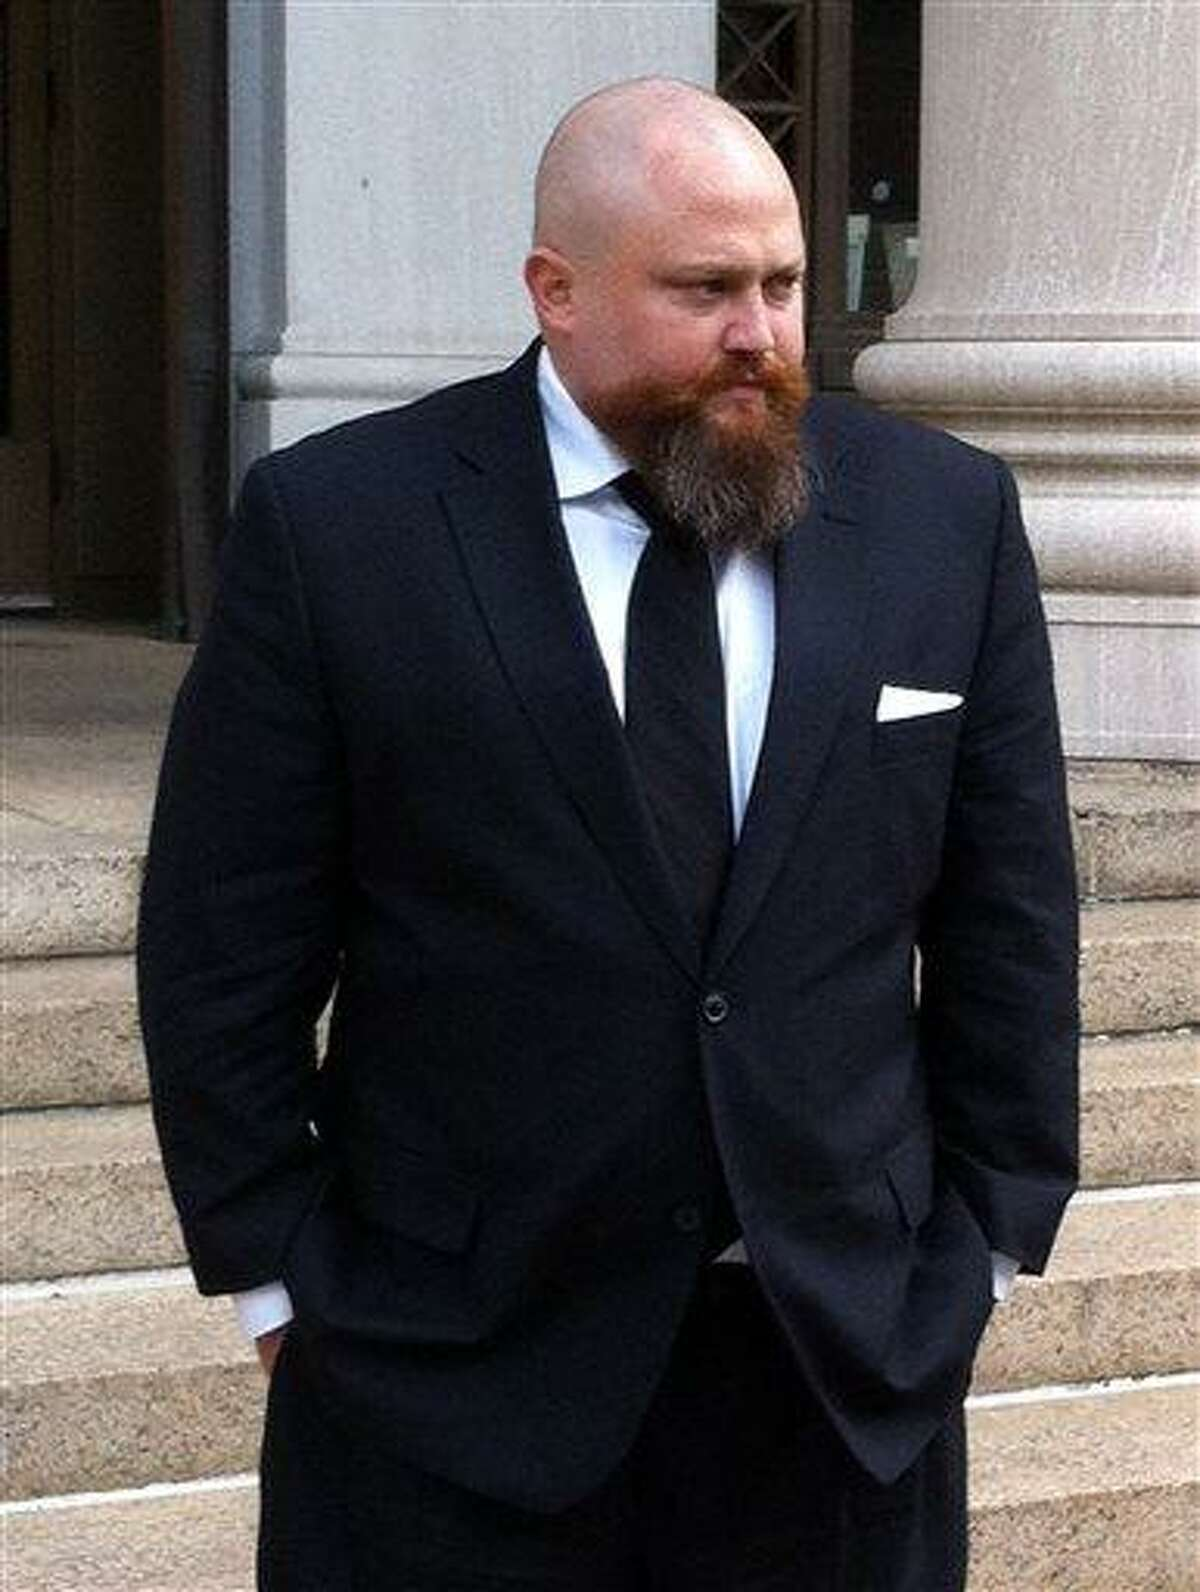 Robert Braddock Jr. walks outside federal court in New Haven, Conn., Monday May 13, 2013. Braddock, the finance director for ex-Connecticut House Speaker's failed congressional campaign last year, is on trial on conspiracy and campaign finance charges. (AP Photo/David Collins)